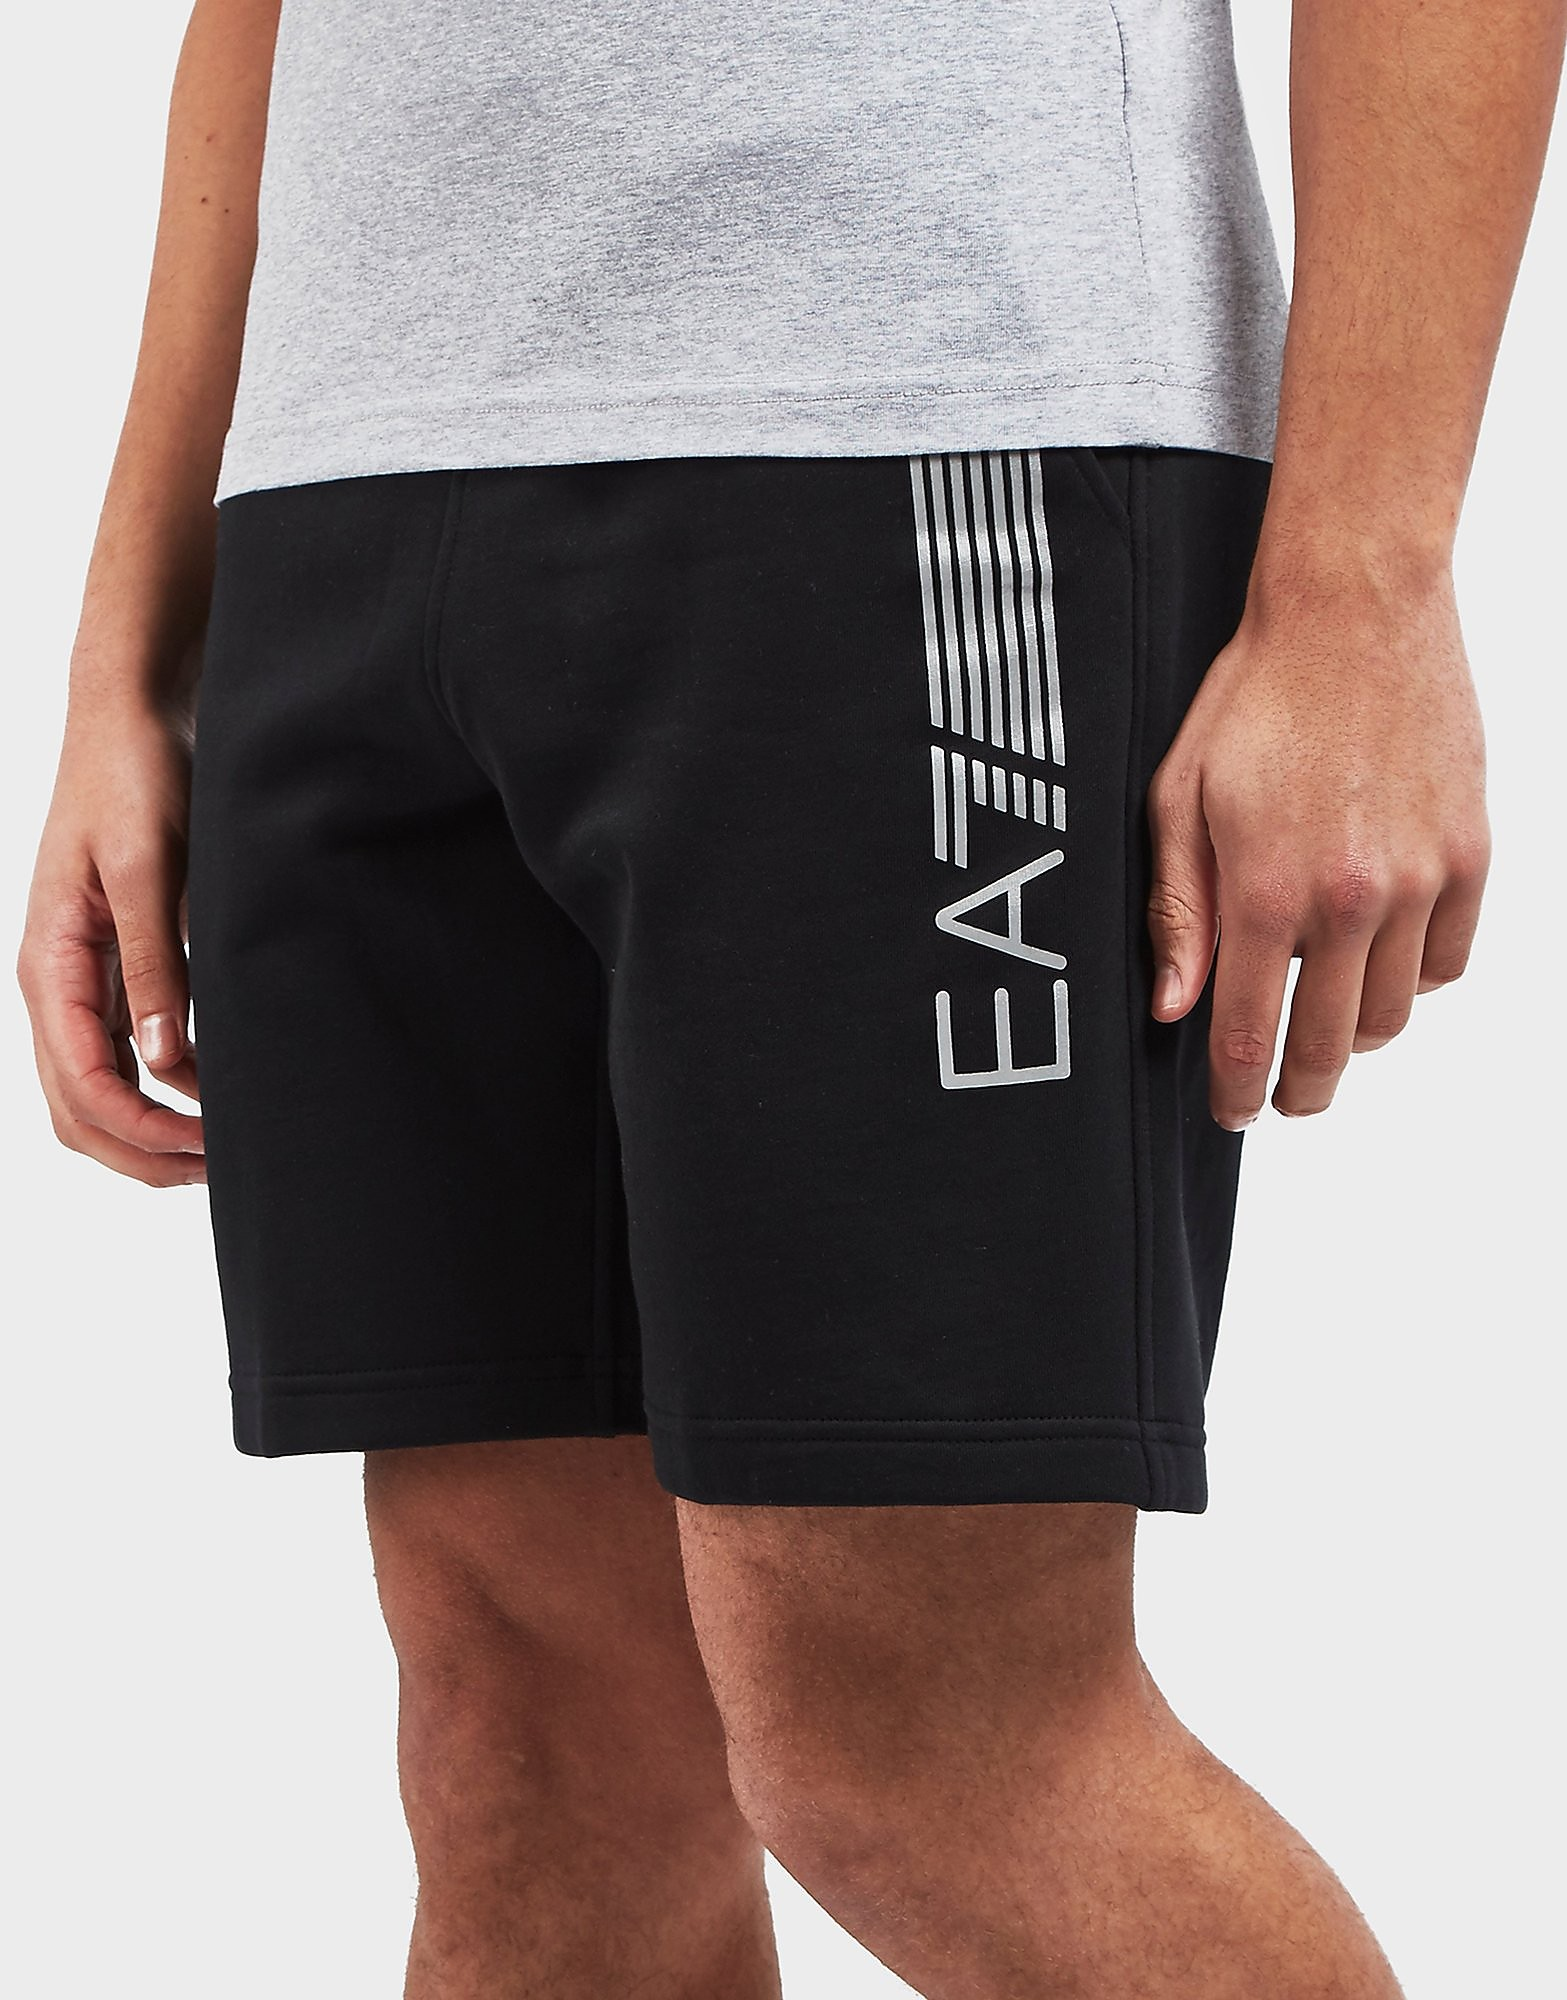 Emporio Armani EA7 7 Lines Fleece Shorts - Exclusive